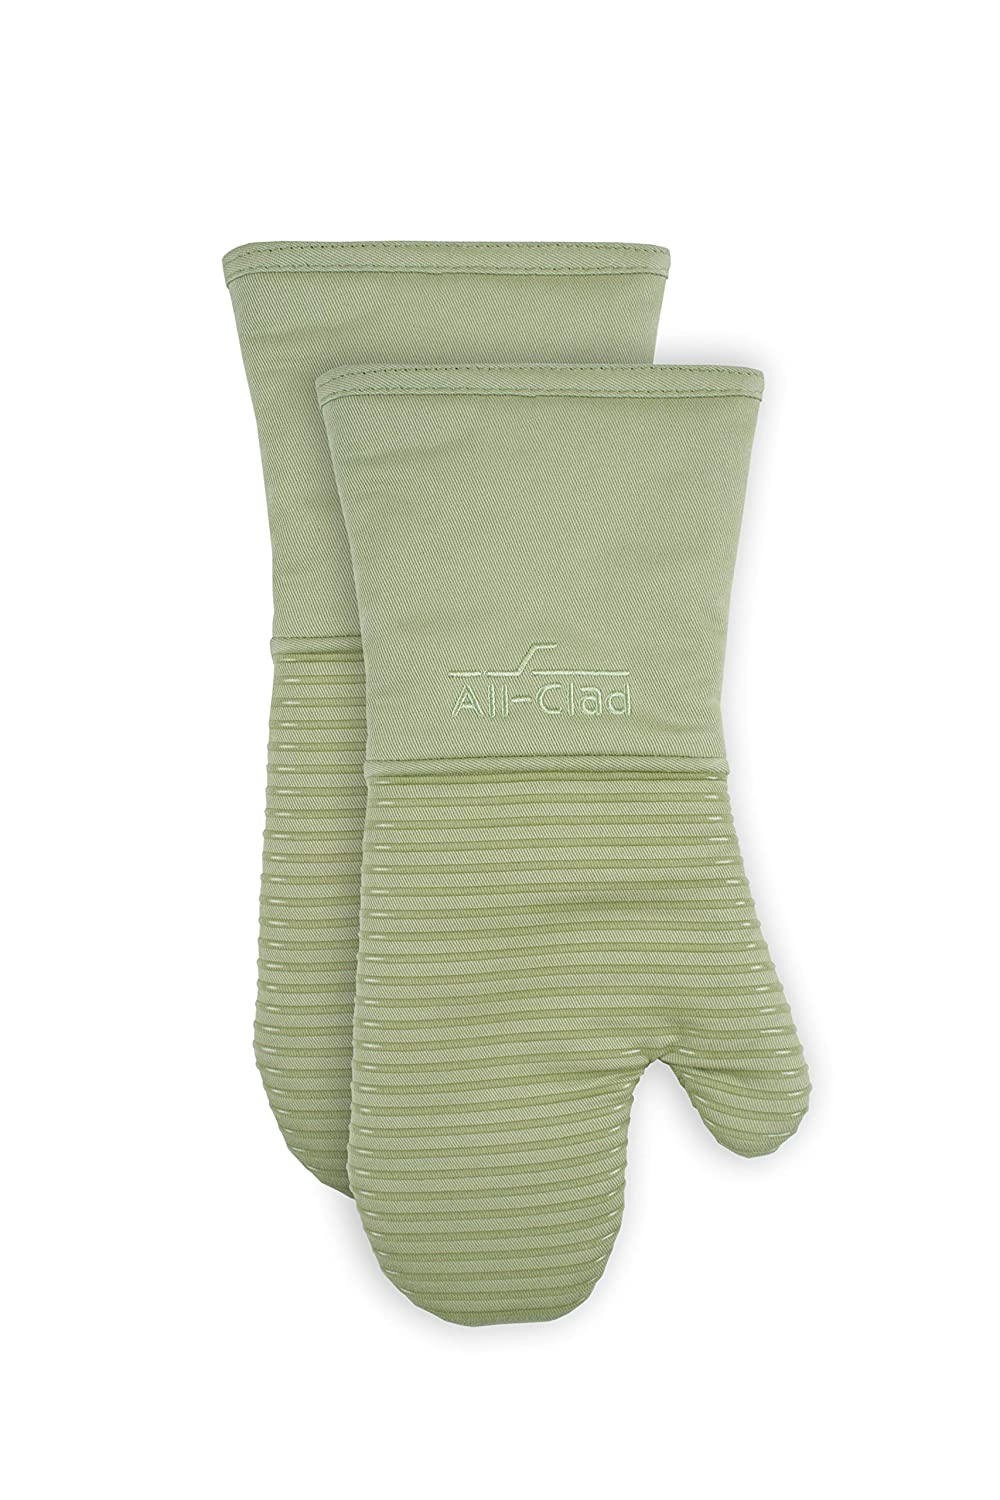 All-Clad Textiles PAC2SOM02 Silicone Oven Mitt, 2 Pack, Fennel